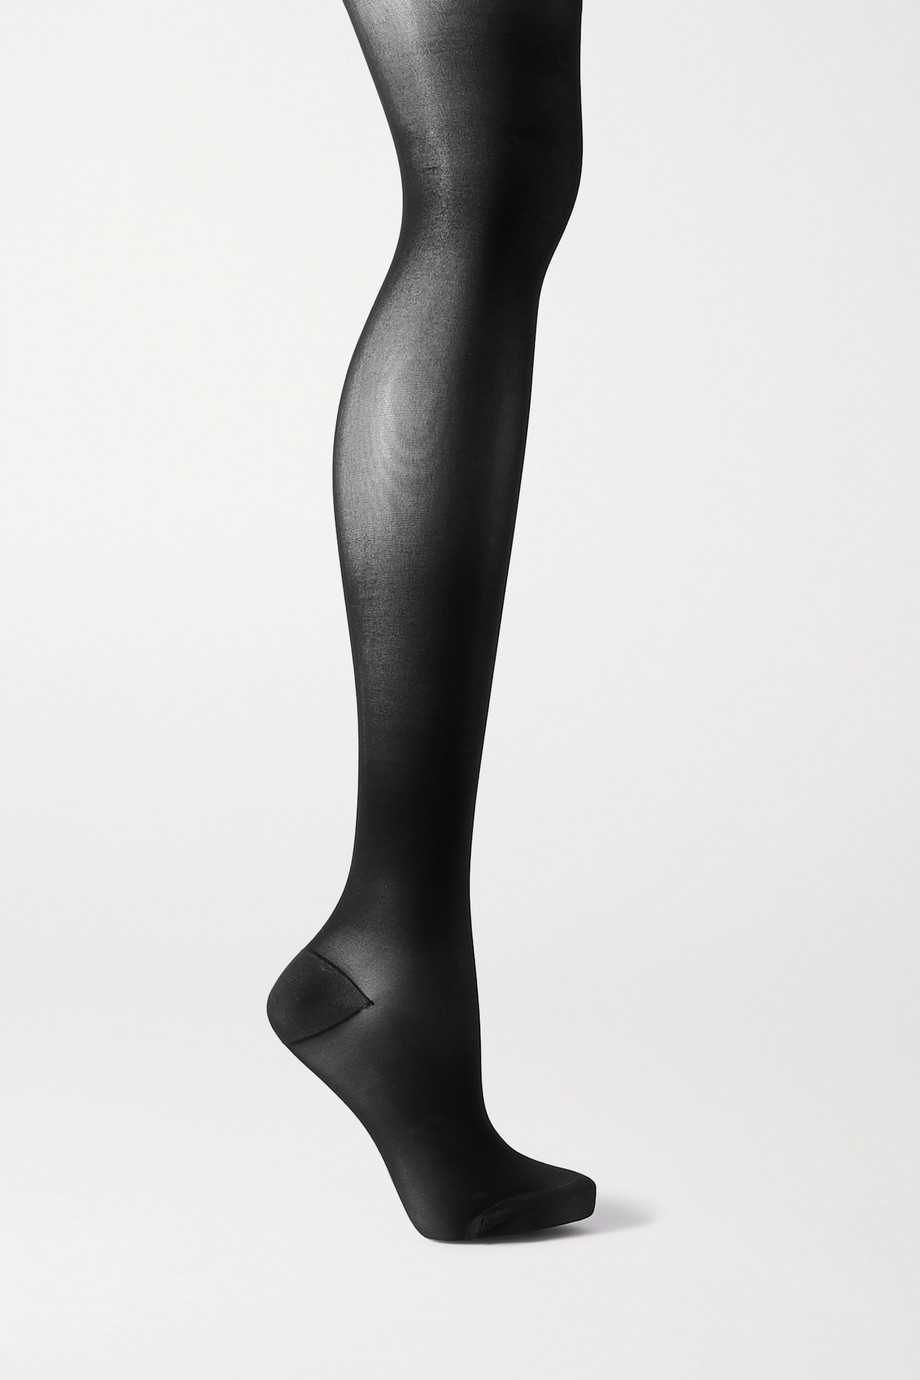 FALKE Energize 30 denier tights